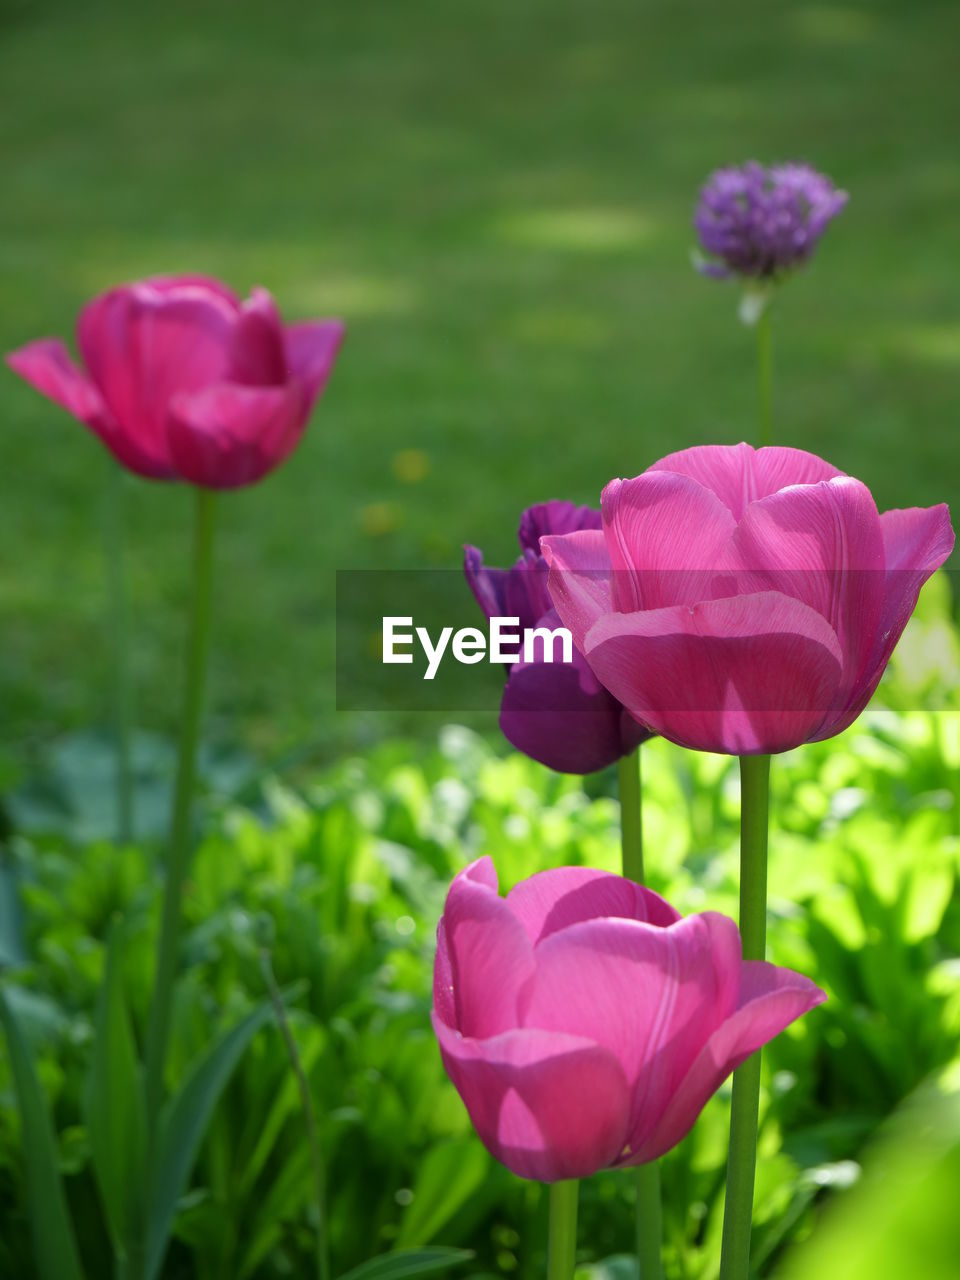 flower, flowering plant, beauty in nature, vulnerability, fragility, plant, petal, freshness, growth, flower head, inflorescence, pink color, close-up, nature, focus on foreground, day, no people, field, plant stem, land, tulip, outdoors, purple, springtime